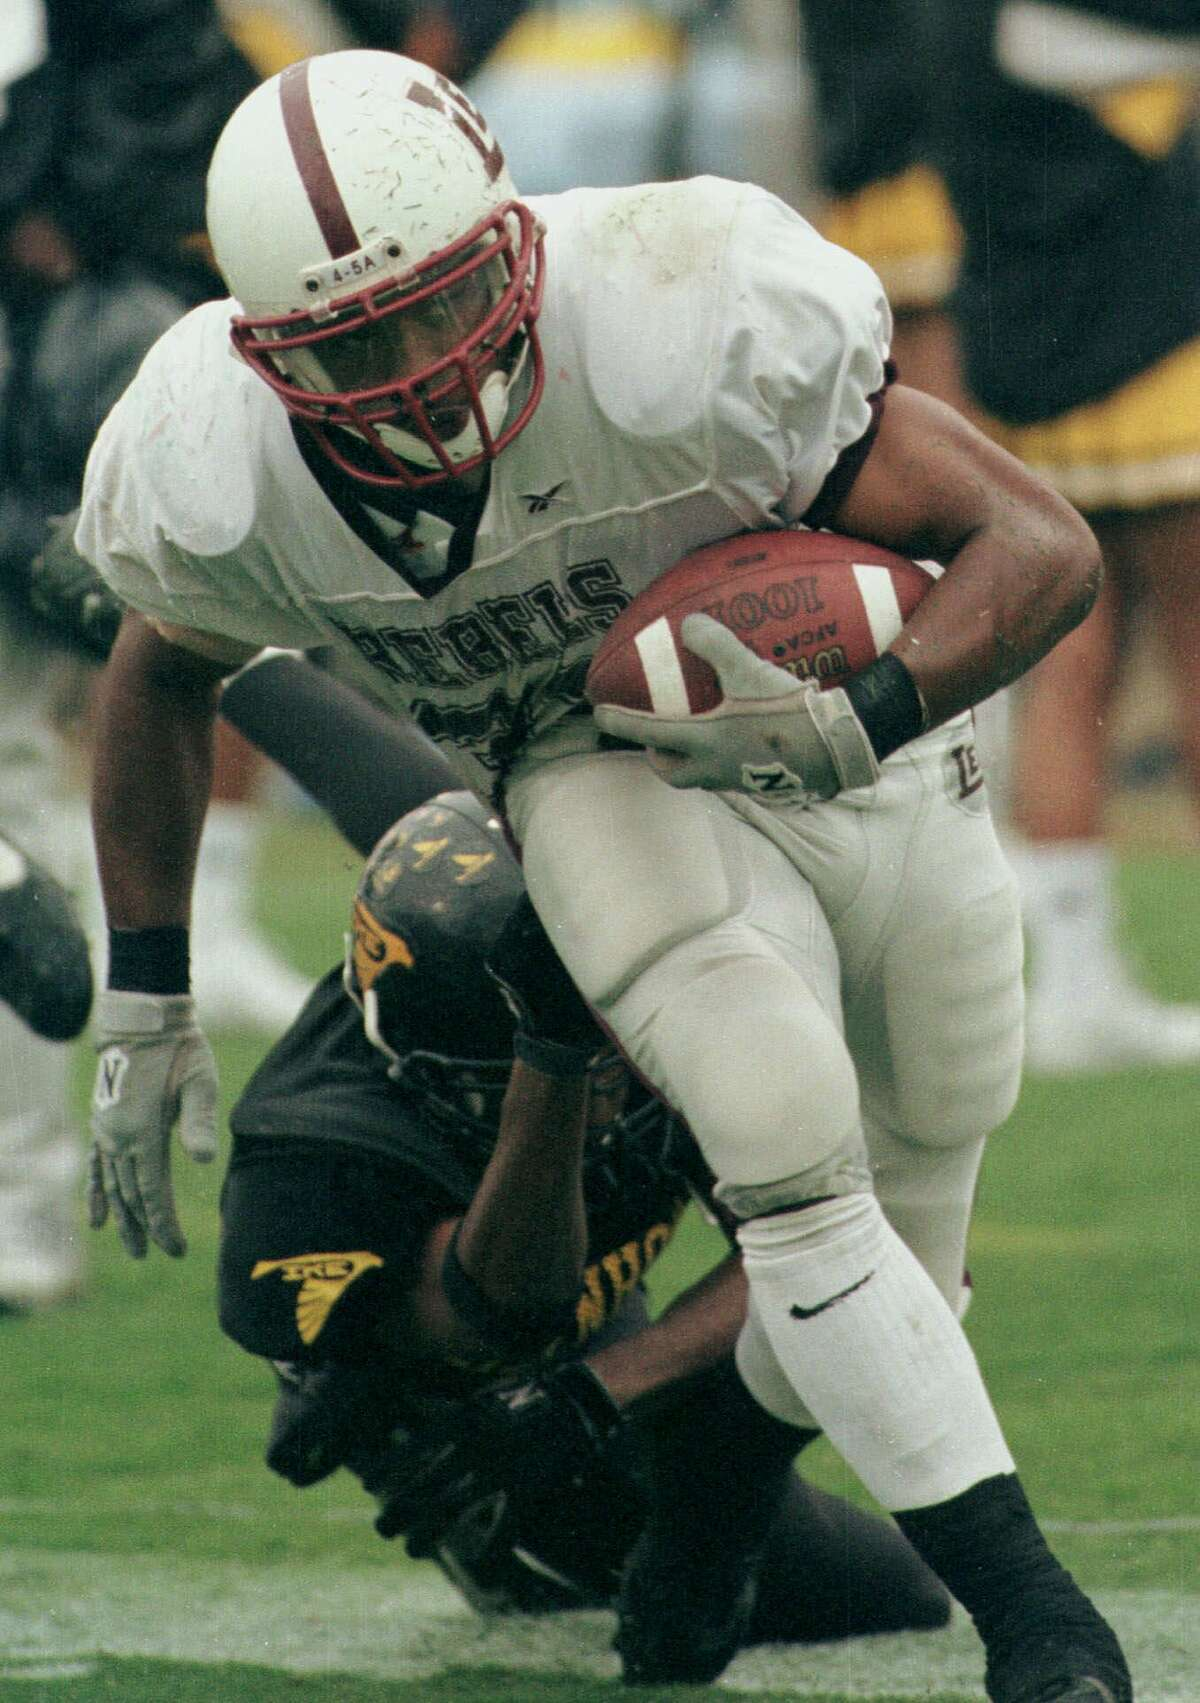 Midland Lee's Cedric Benson, tries to break the tackle of an Aldine Eisenhower defender in the Class 5A Division I UIL state football championship game Saturday, Dec. 11, 1999, in Austin, Texas. Midland won 42-21. (AP Photo/Thomas Terry) HOUCHRON CAPTION (12/10/2000): With Midland Lee running back Cedric Benson, above, one of its key catches, Texas has reeled in more than three times as many early commitments from the Chronicle's Top 100 as the next closest school.